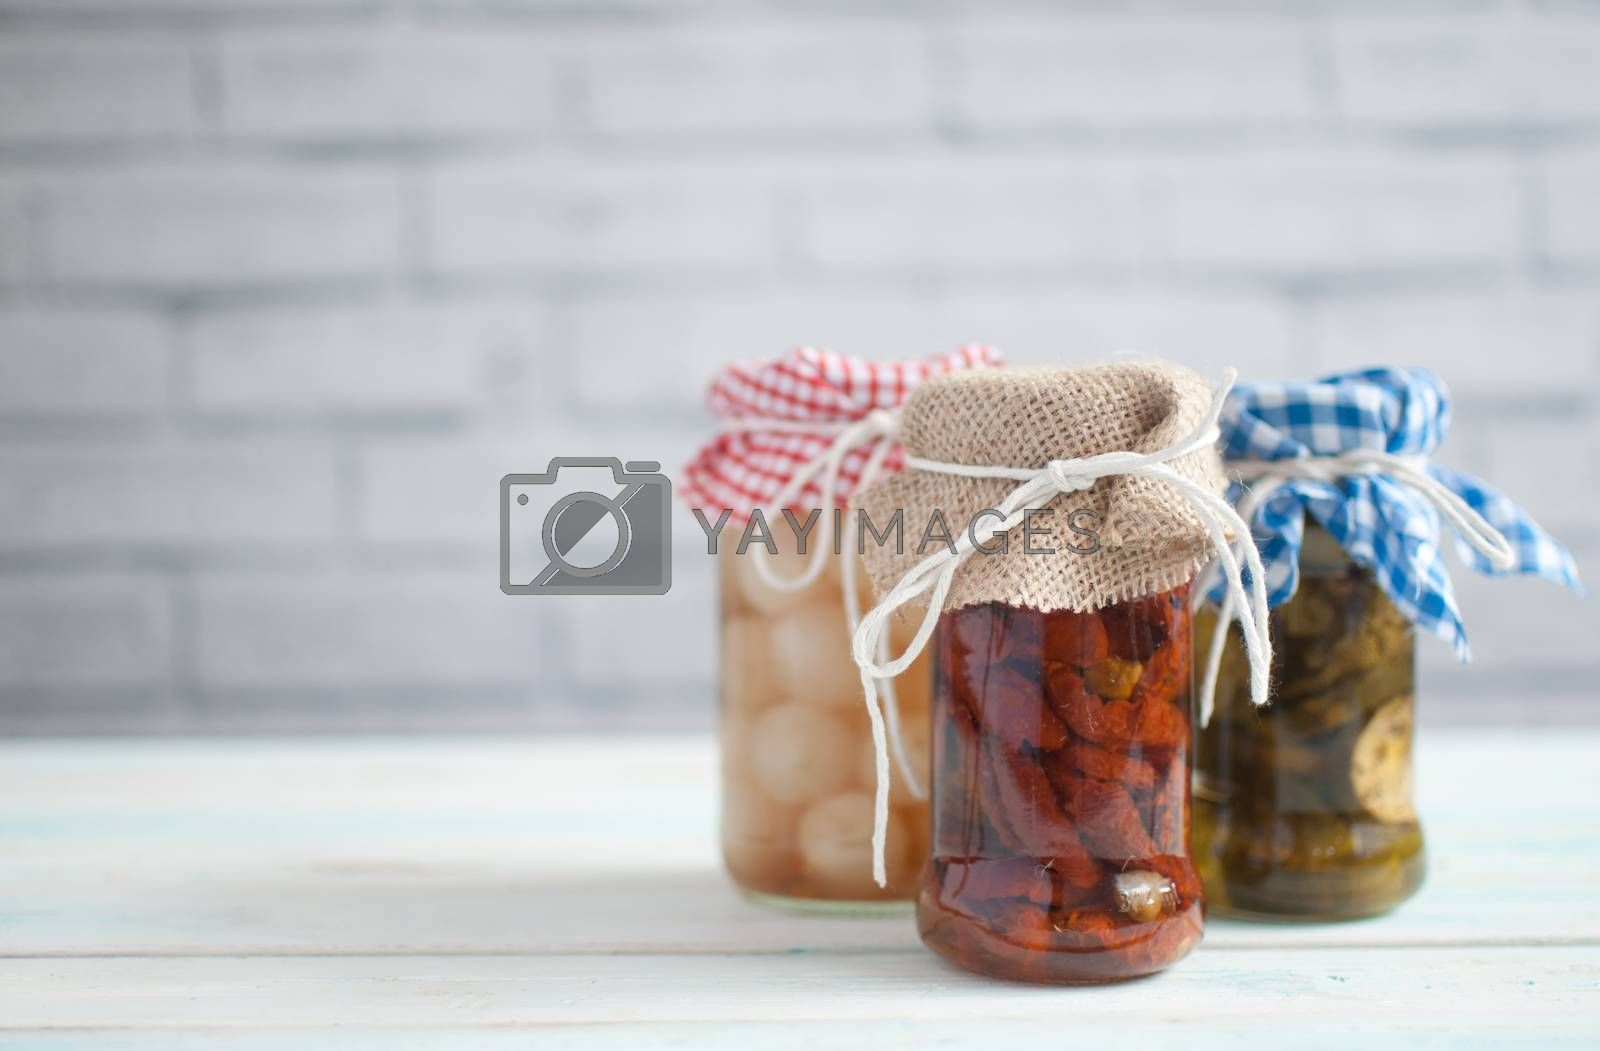 Royalty free image of Fermented foods by unikpix